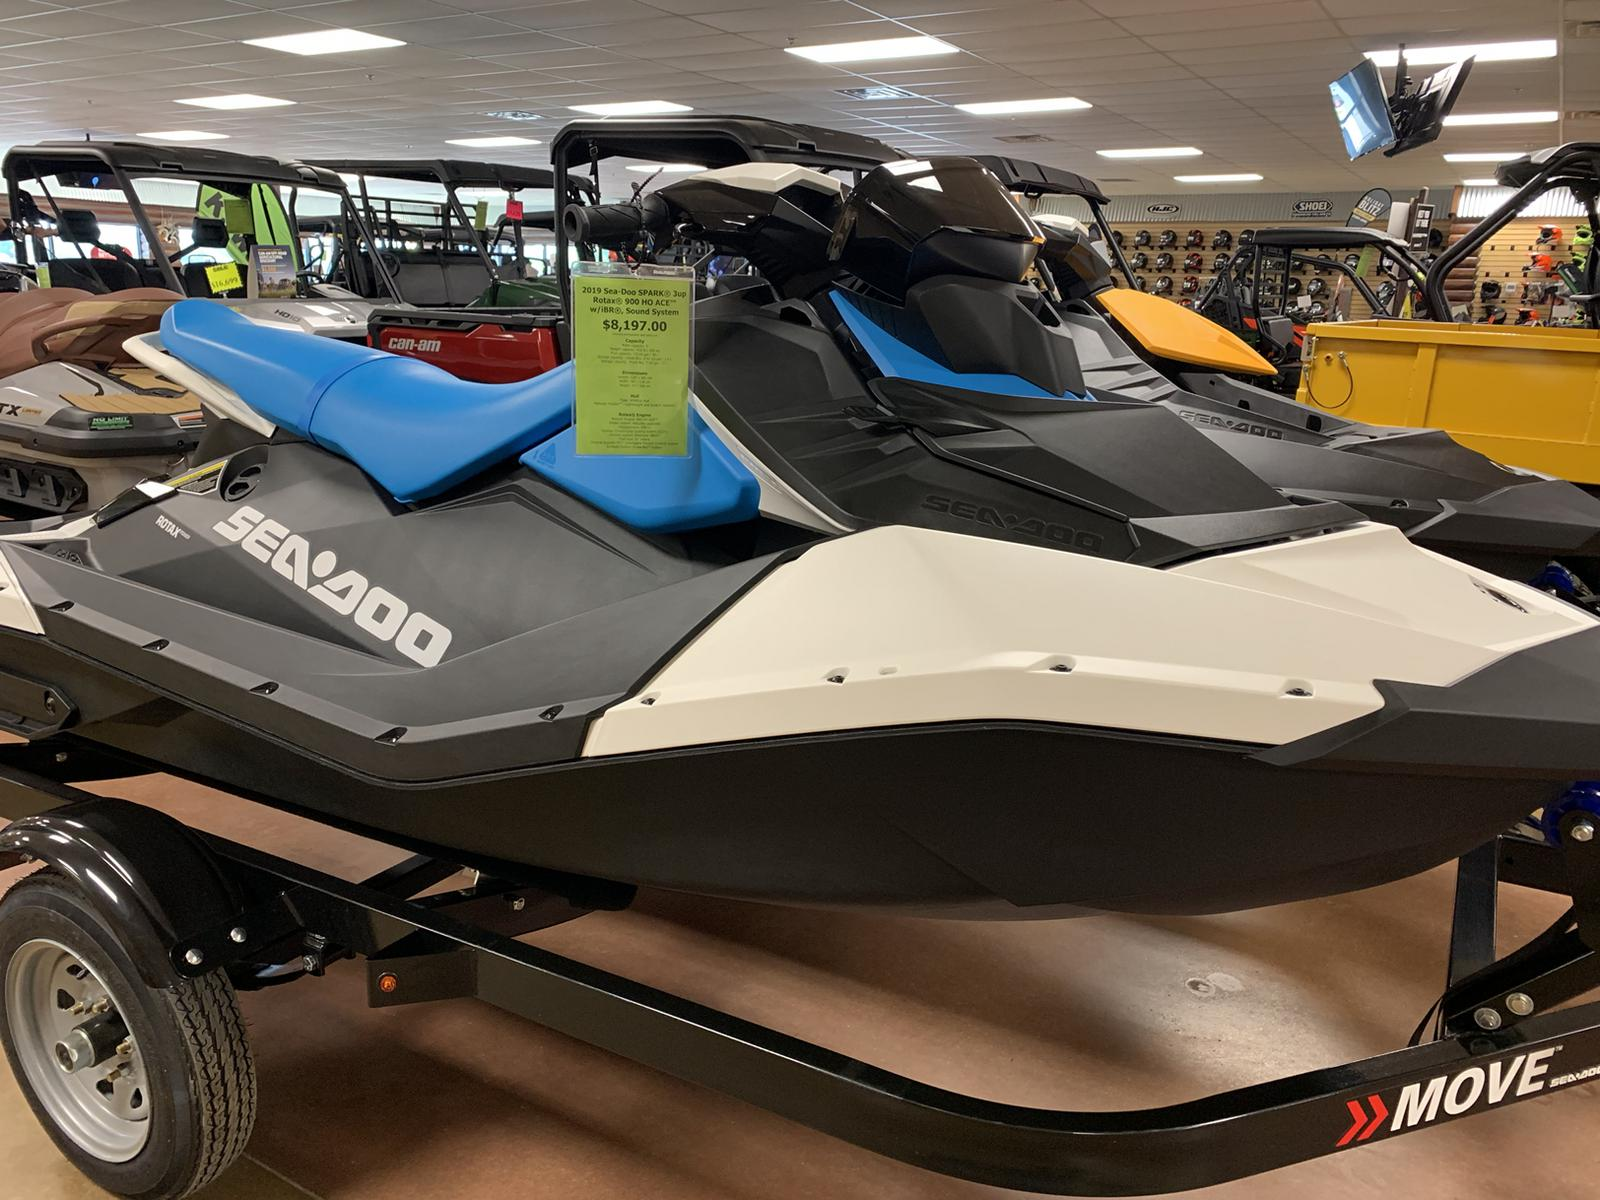 Inventory from Sea-Doo No Limit Powersports